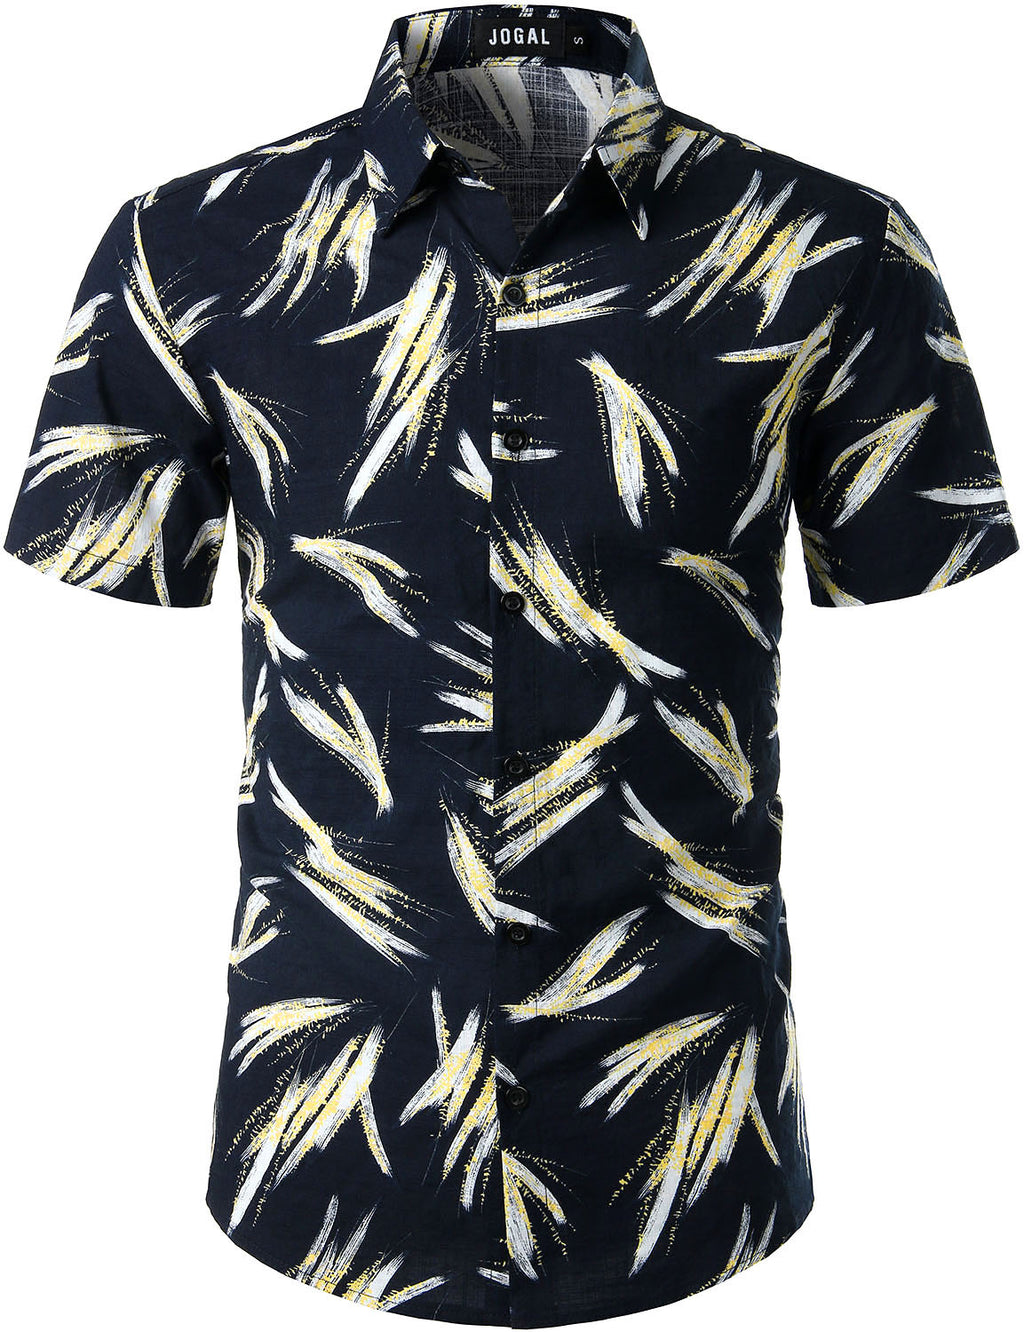 JOGAL Men's Cotton Button Down Short Sleeve Hawaiian Shirt(Black bamboo)